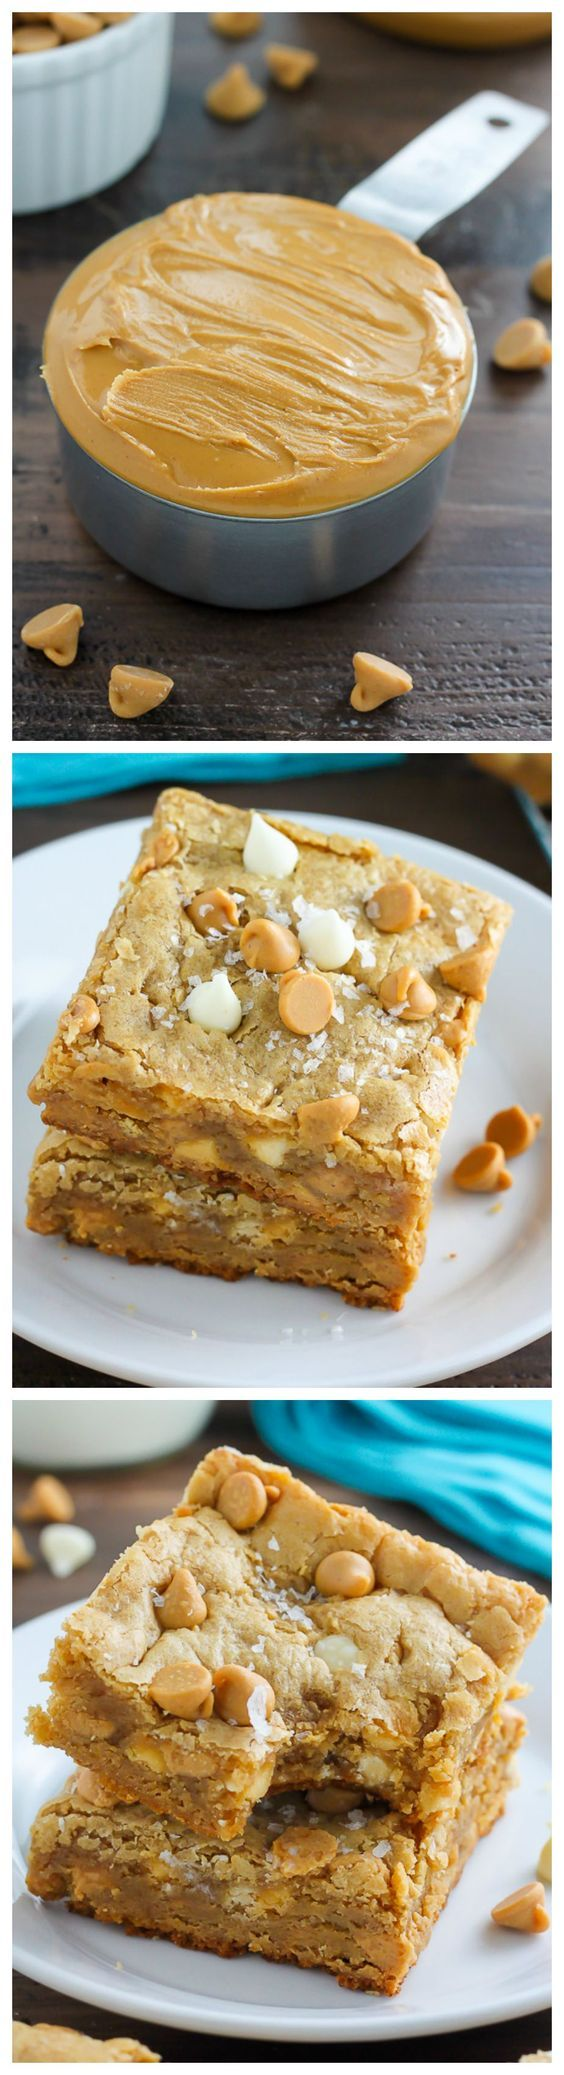 Thick and Chewy White Chocolate Peanut Butter Blondies. So good with a cup of coffee.